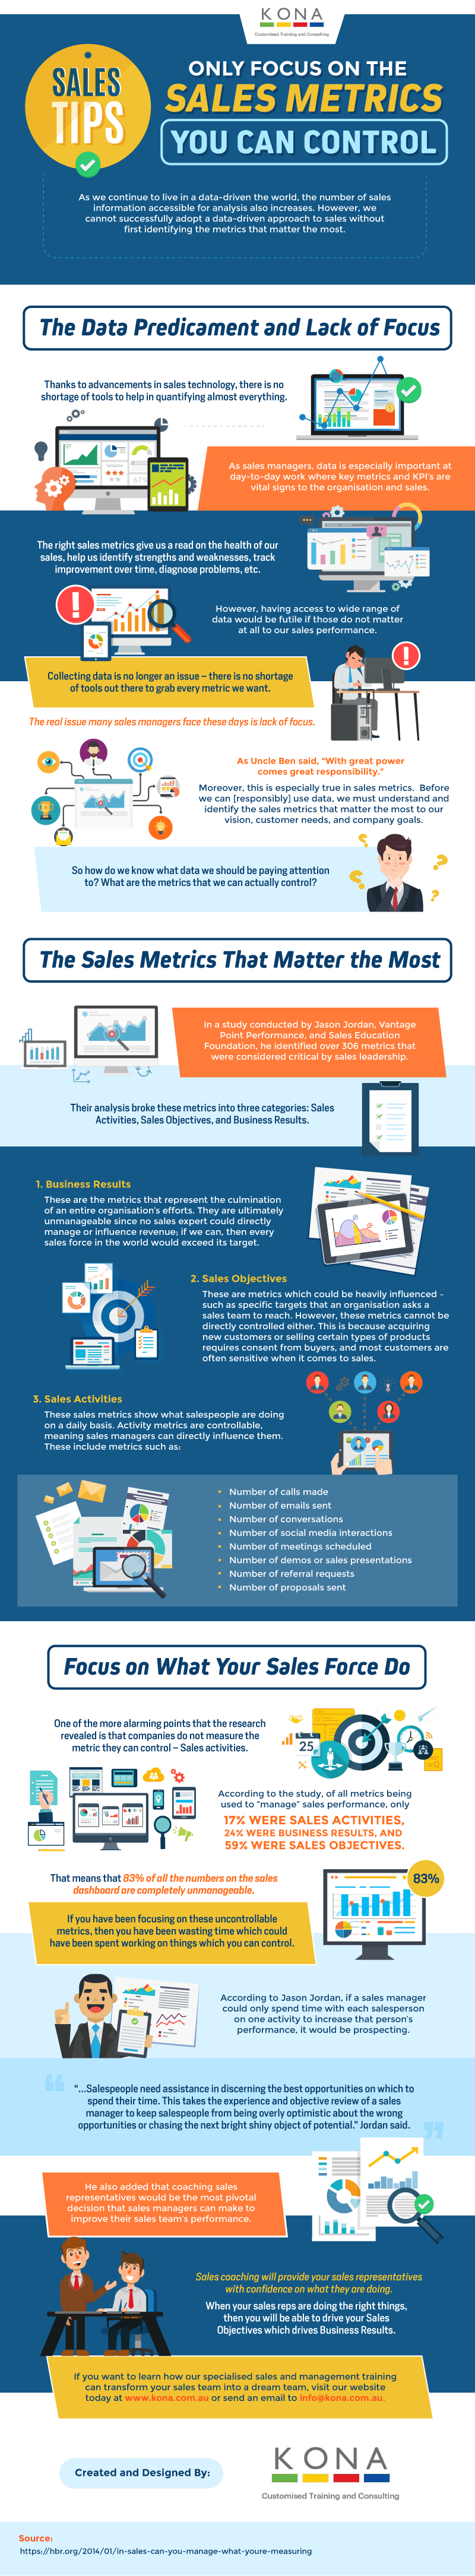 Infographic by KONA - Sales Metrics you can control